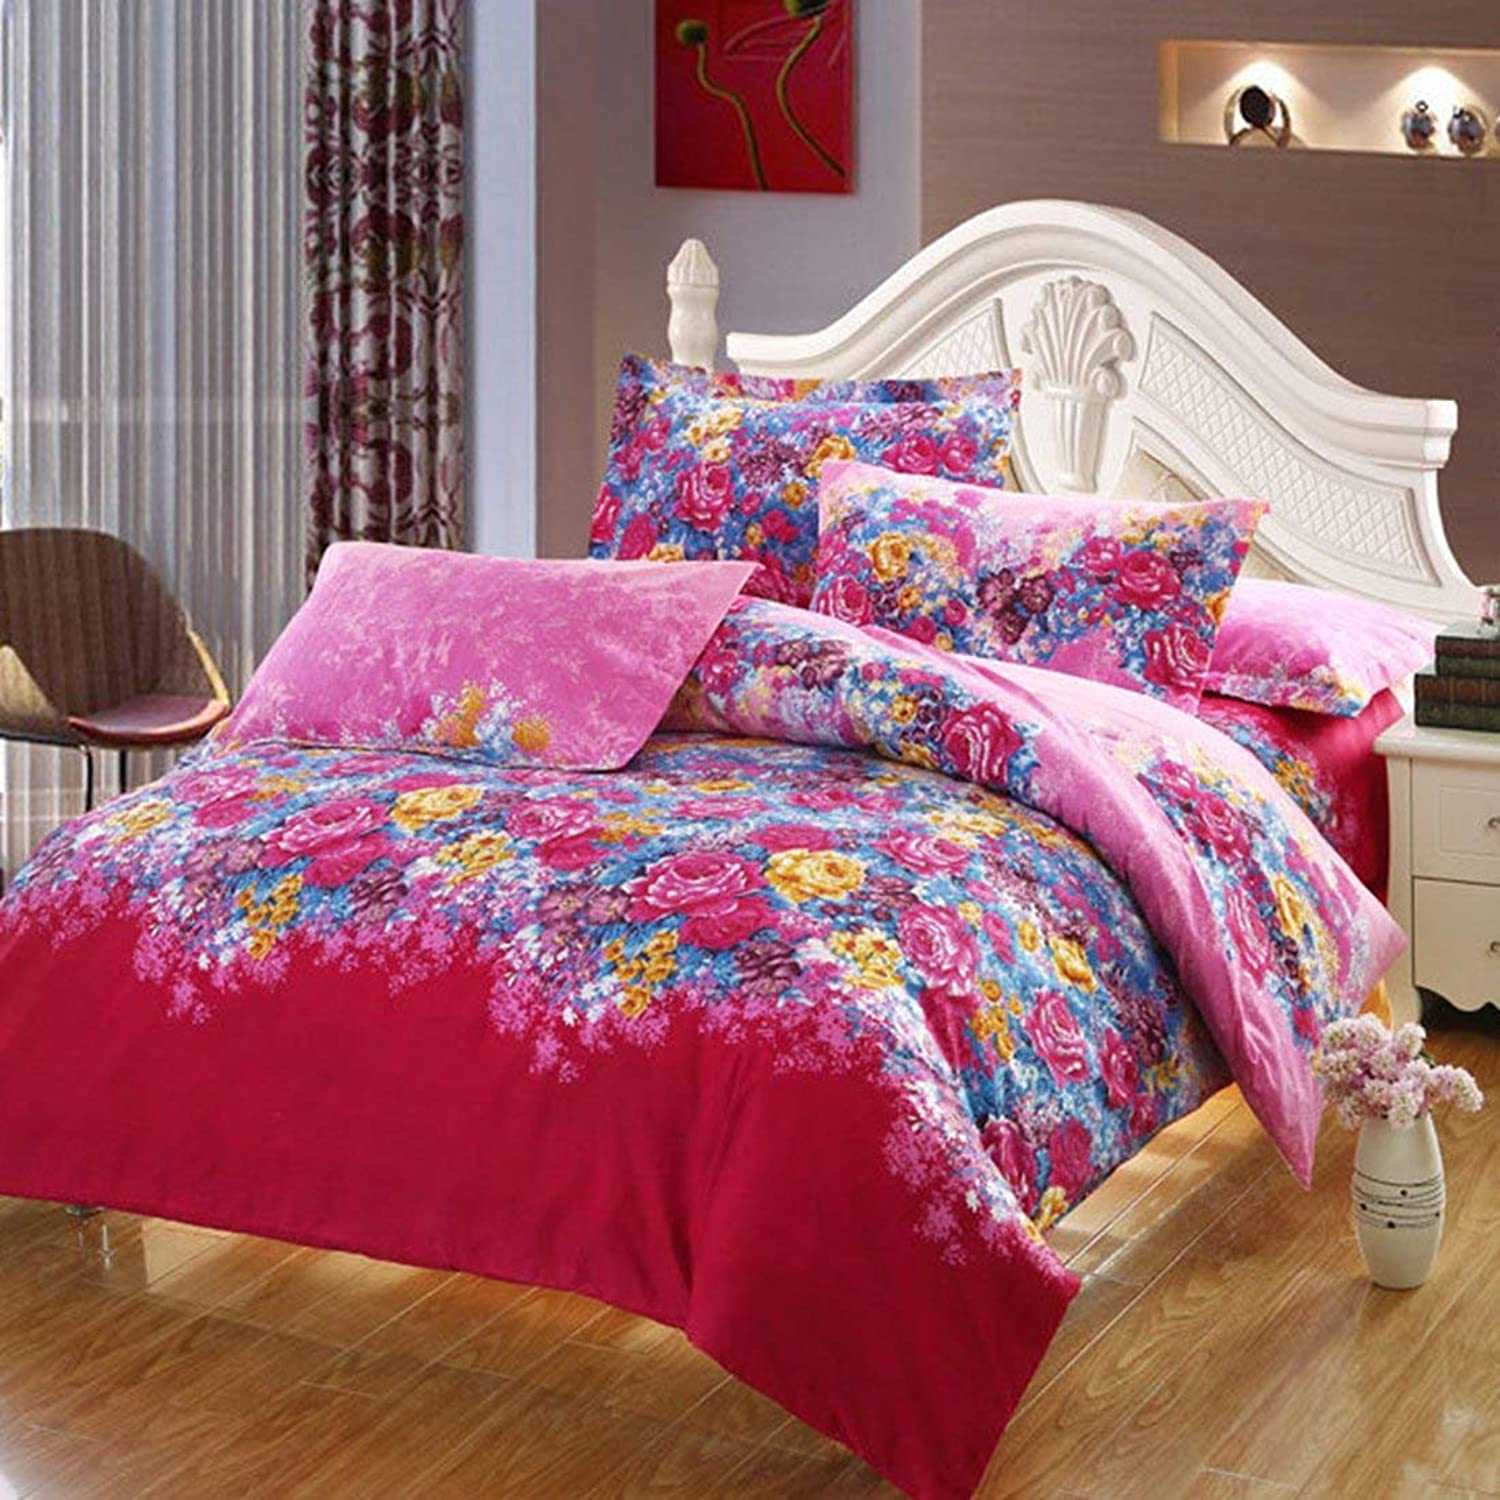 Double, Florals   Bed Sets,Florals Pattern Duvet Quilt Cover Pillowcase Bedding Set Double Size